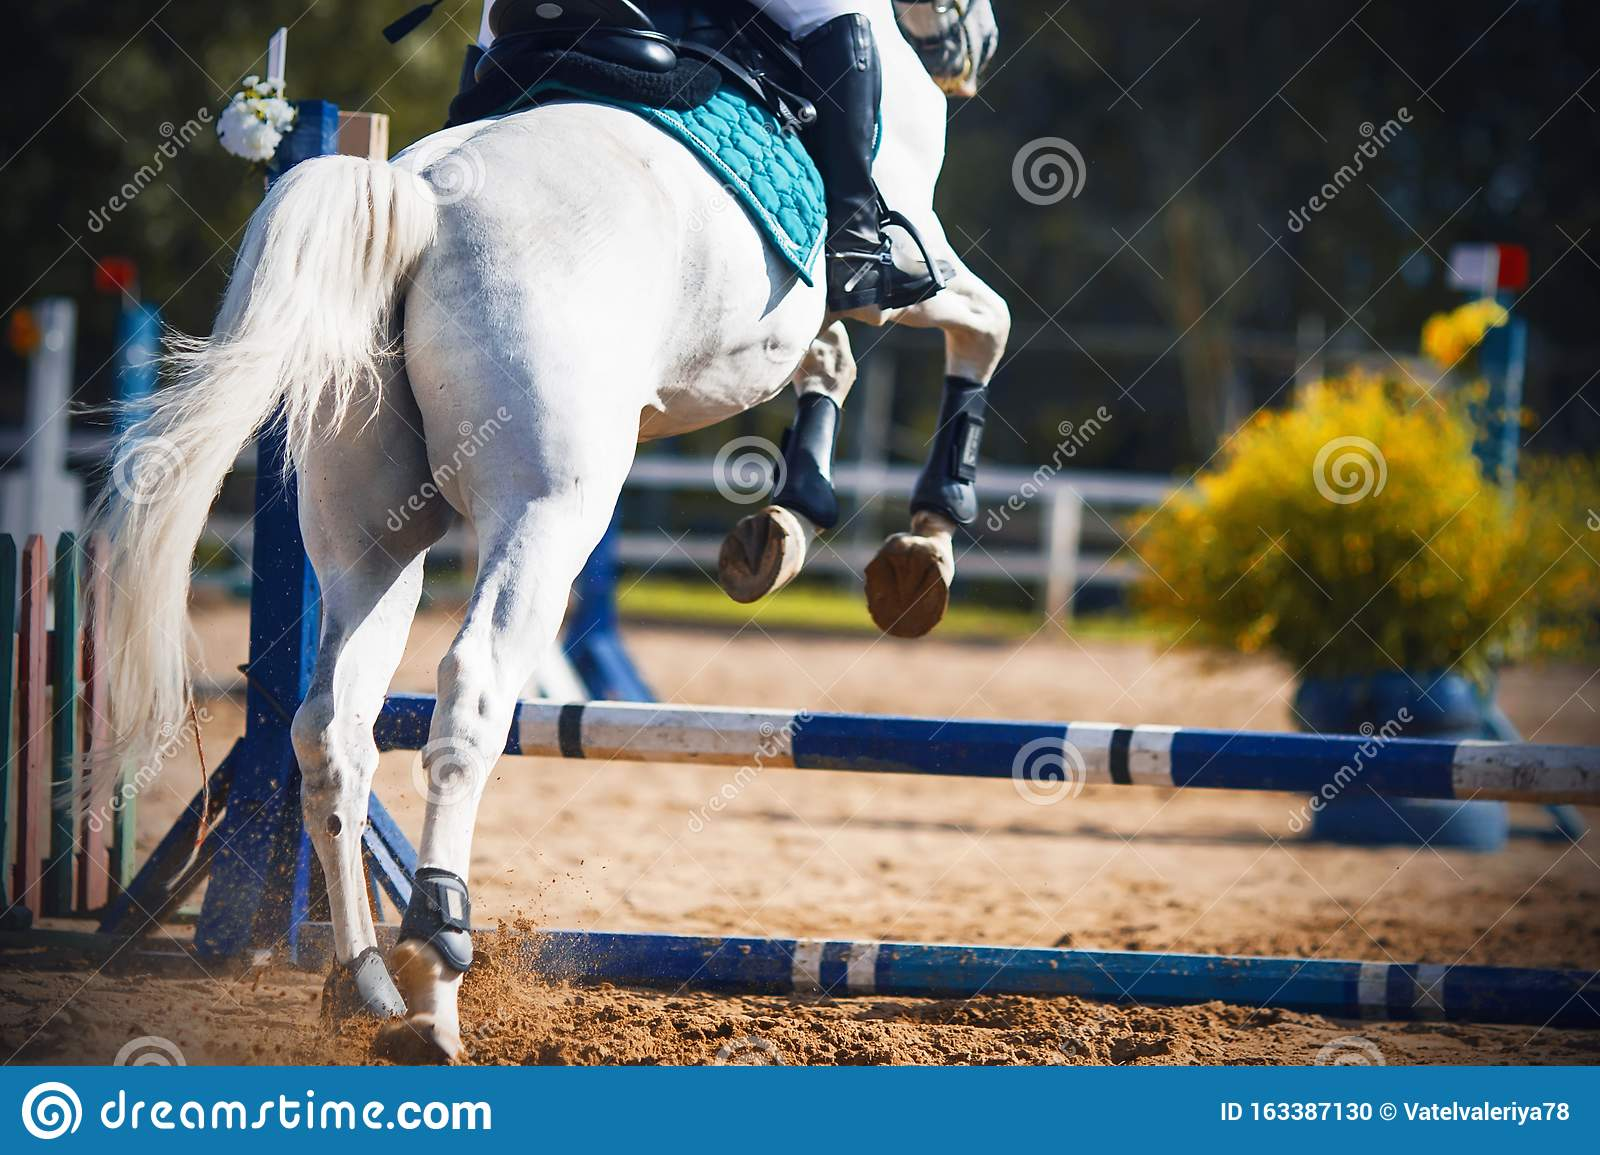 A White Horse Jumps Over The Blue Barrier At A Show Jumping Competition Stock Photo Image Of Horseback Moment 163387130